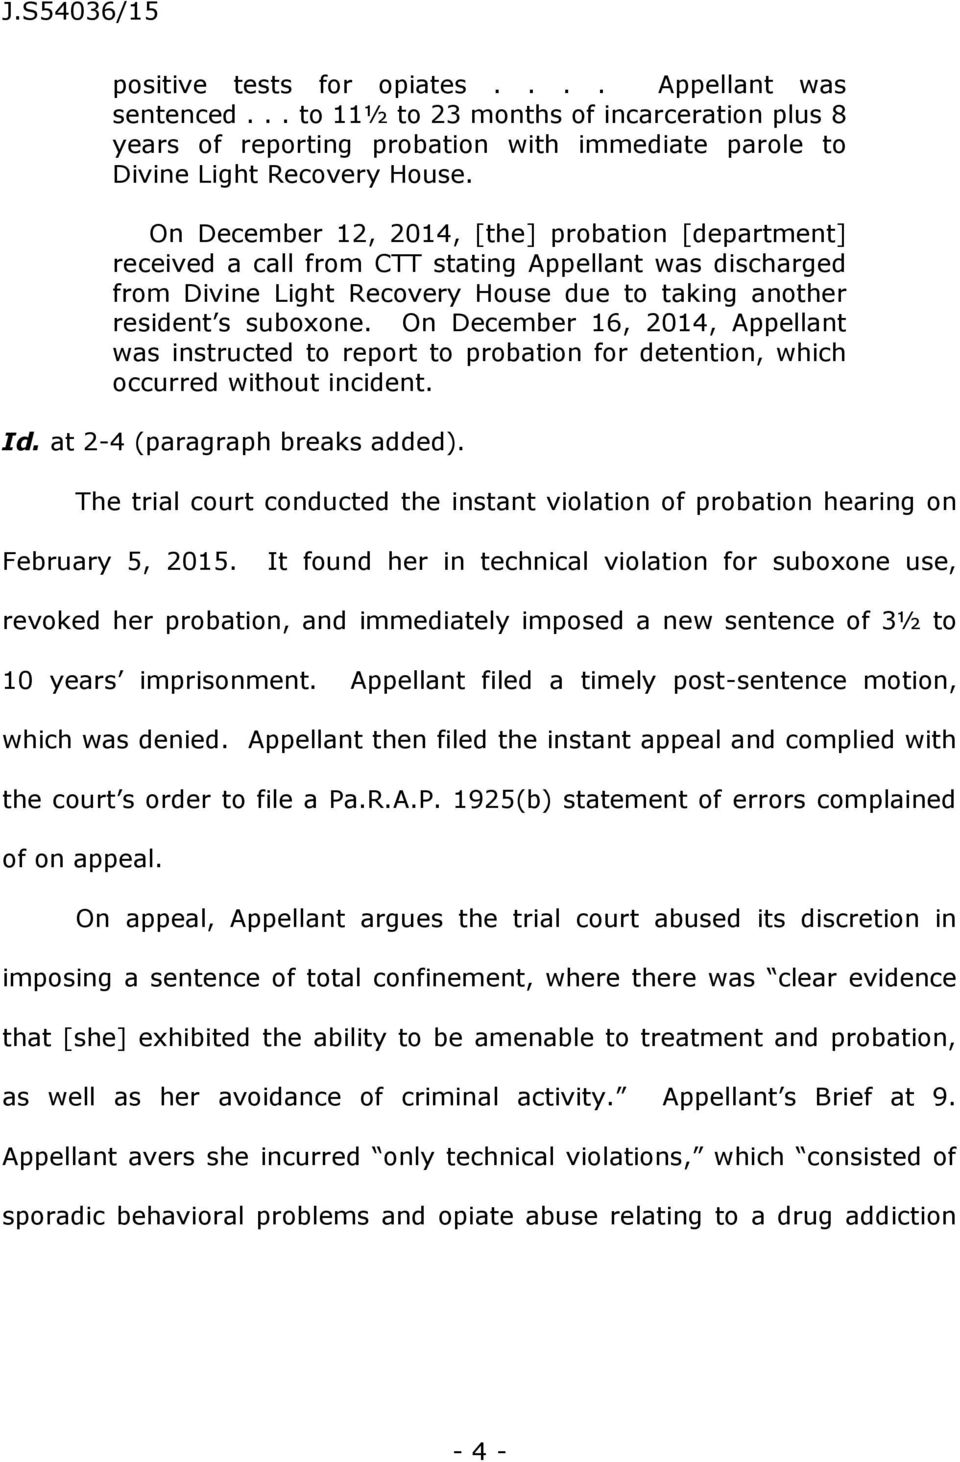 On December 16, 2014, Appellant was instructed to report to probation for detention, which occurred without incident. Id. at 2-4 (paragraph breaks added).